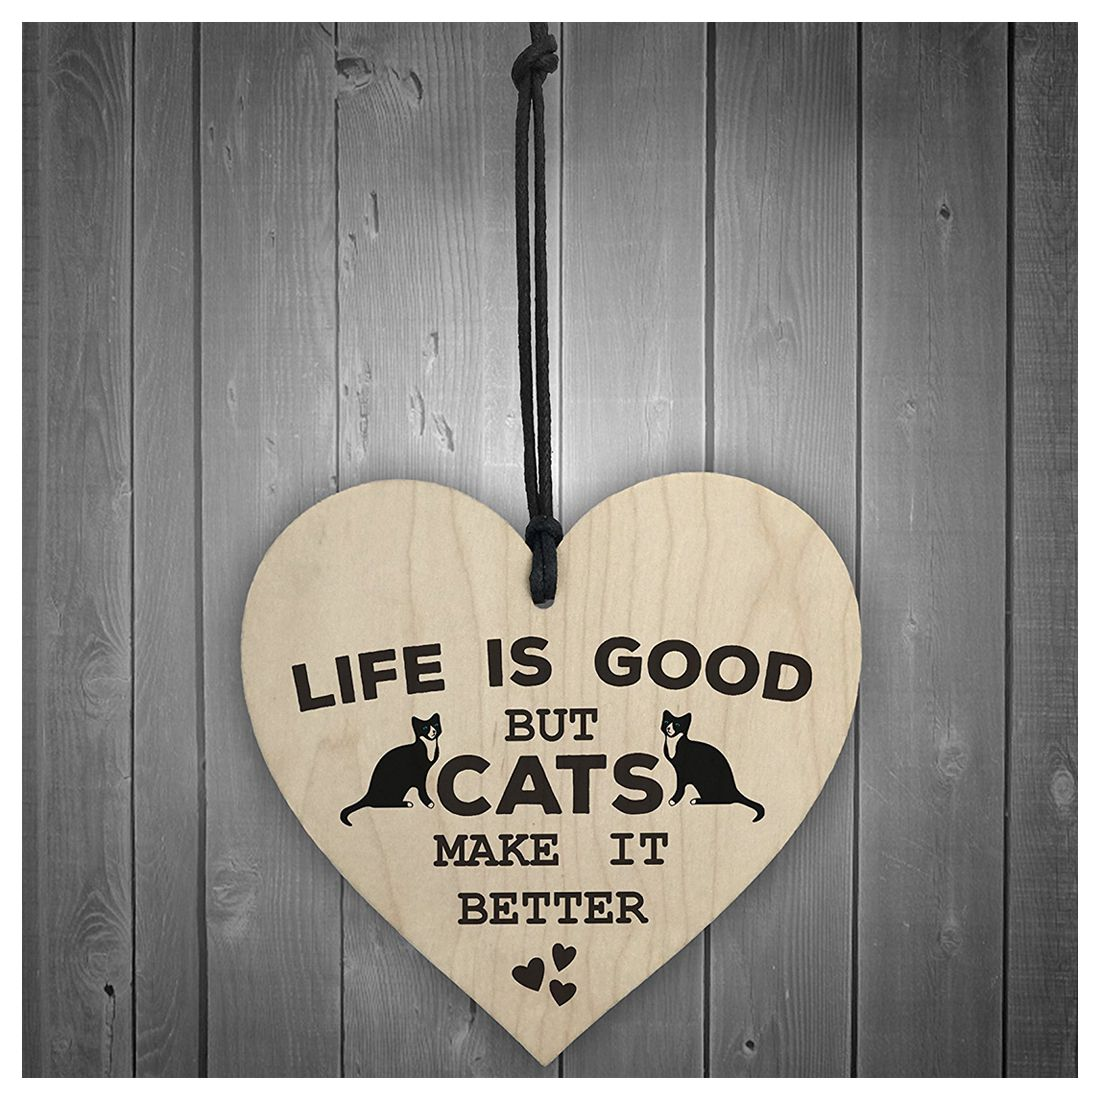 Cats Make Life Better Wooden Heart Shaped Hanging Sign